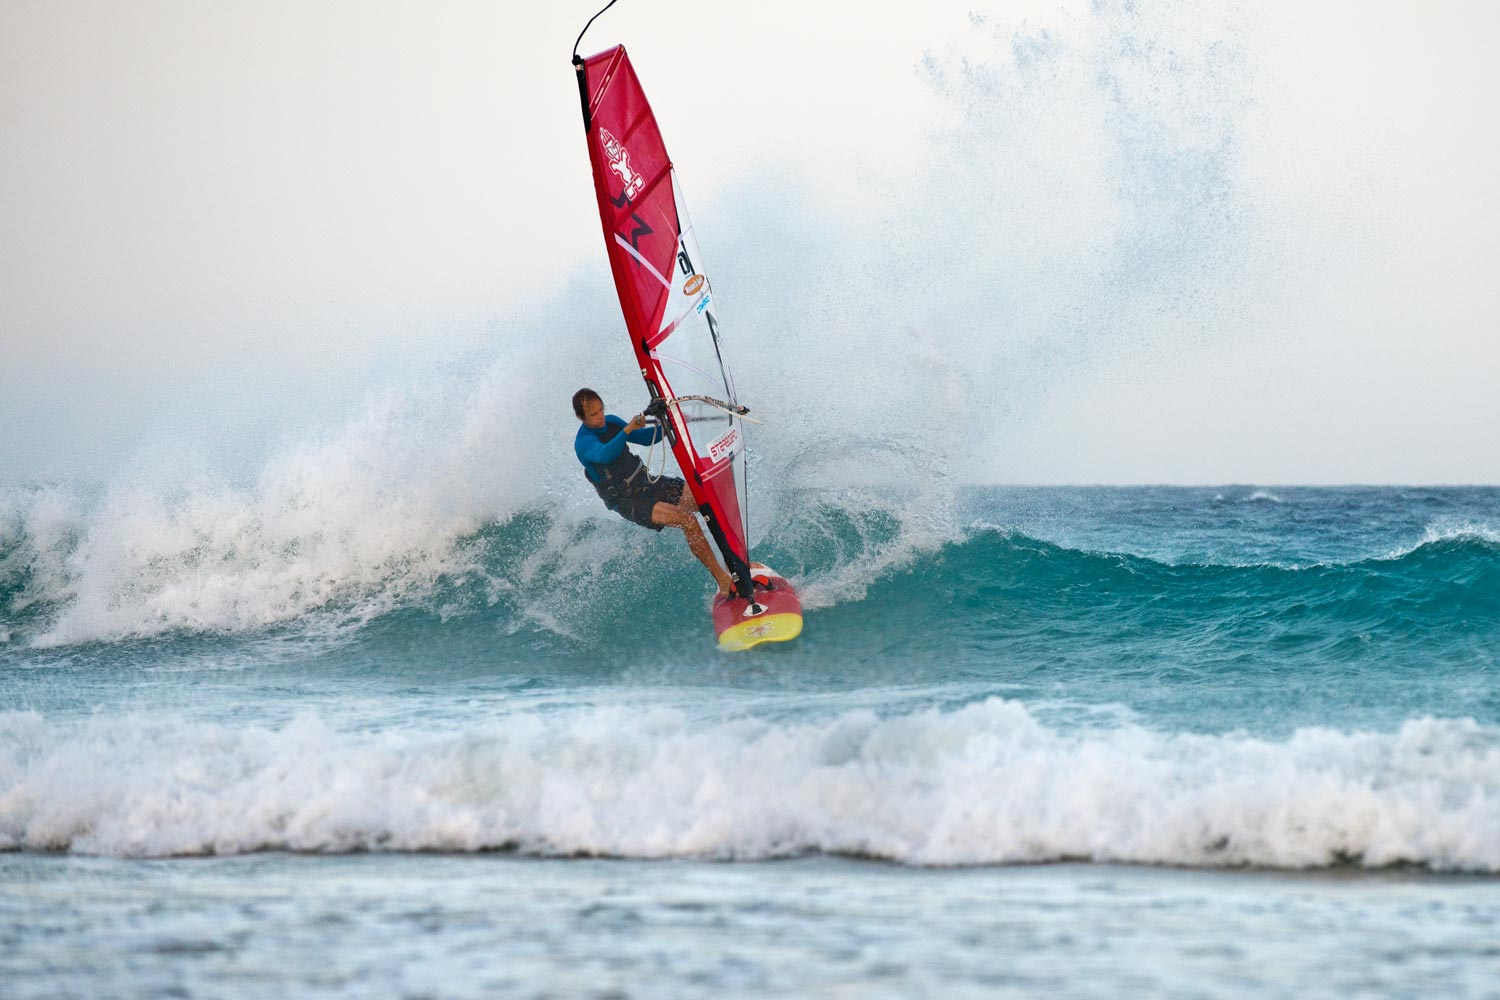 Riding a wave at Risco el Paso in Fuerteventura with the 4G 4.0 m in 2017 (Photo: ©Kerstin Reiger)